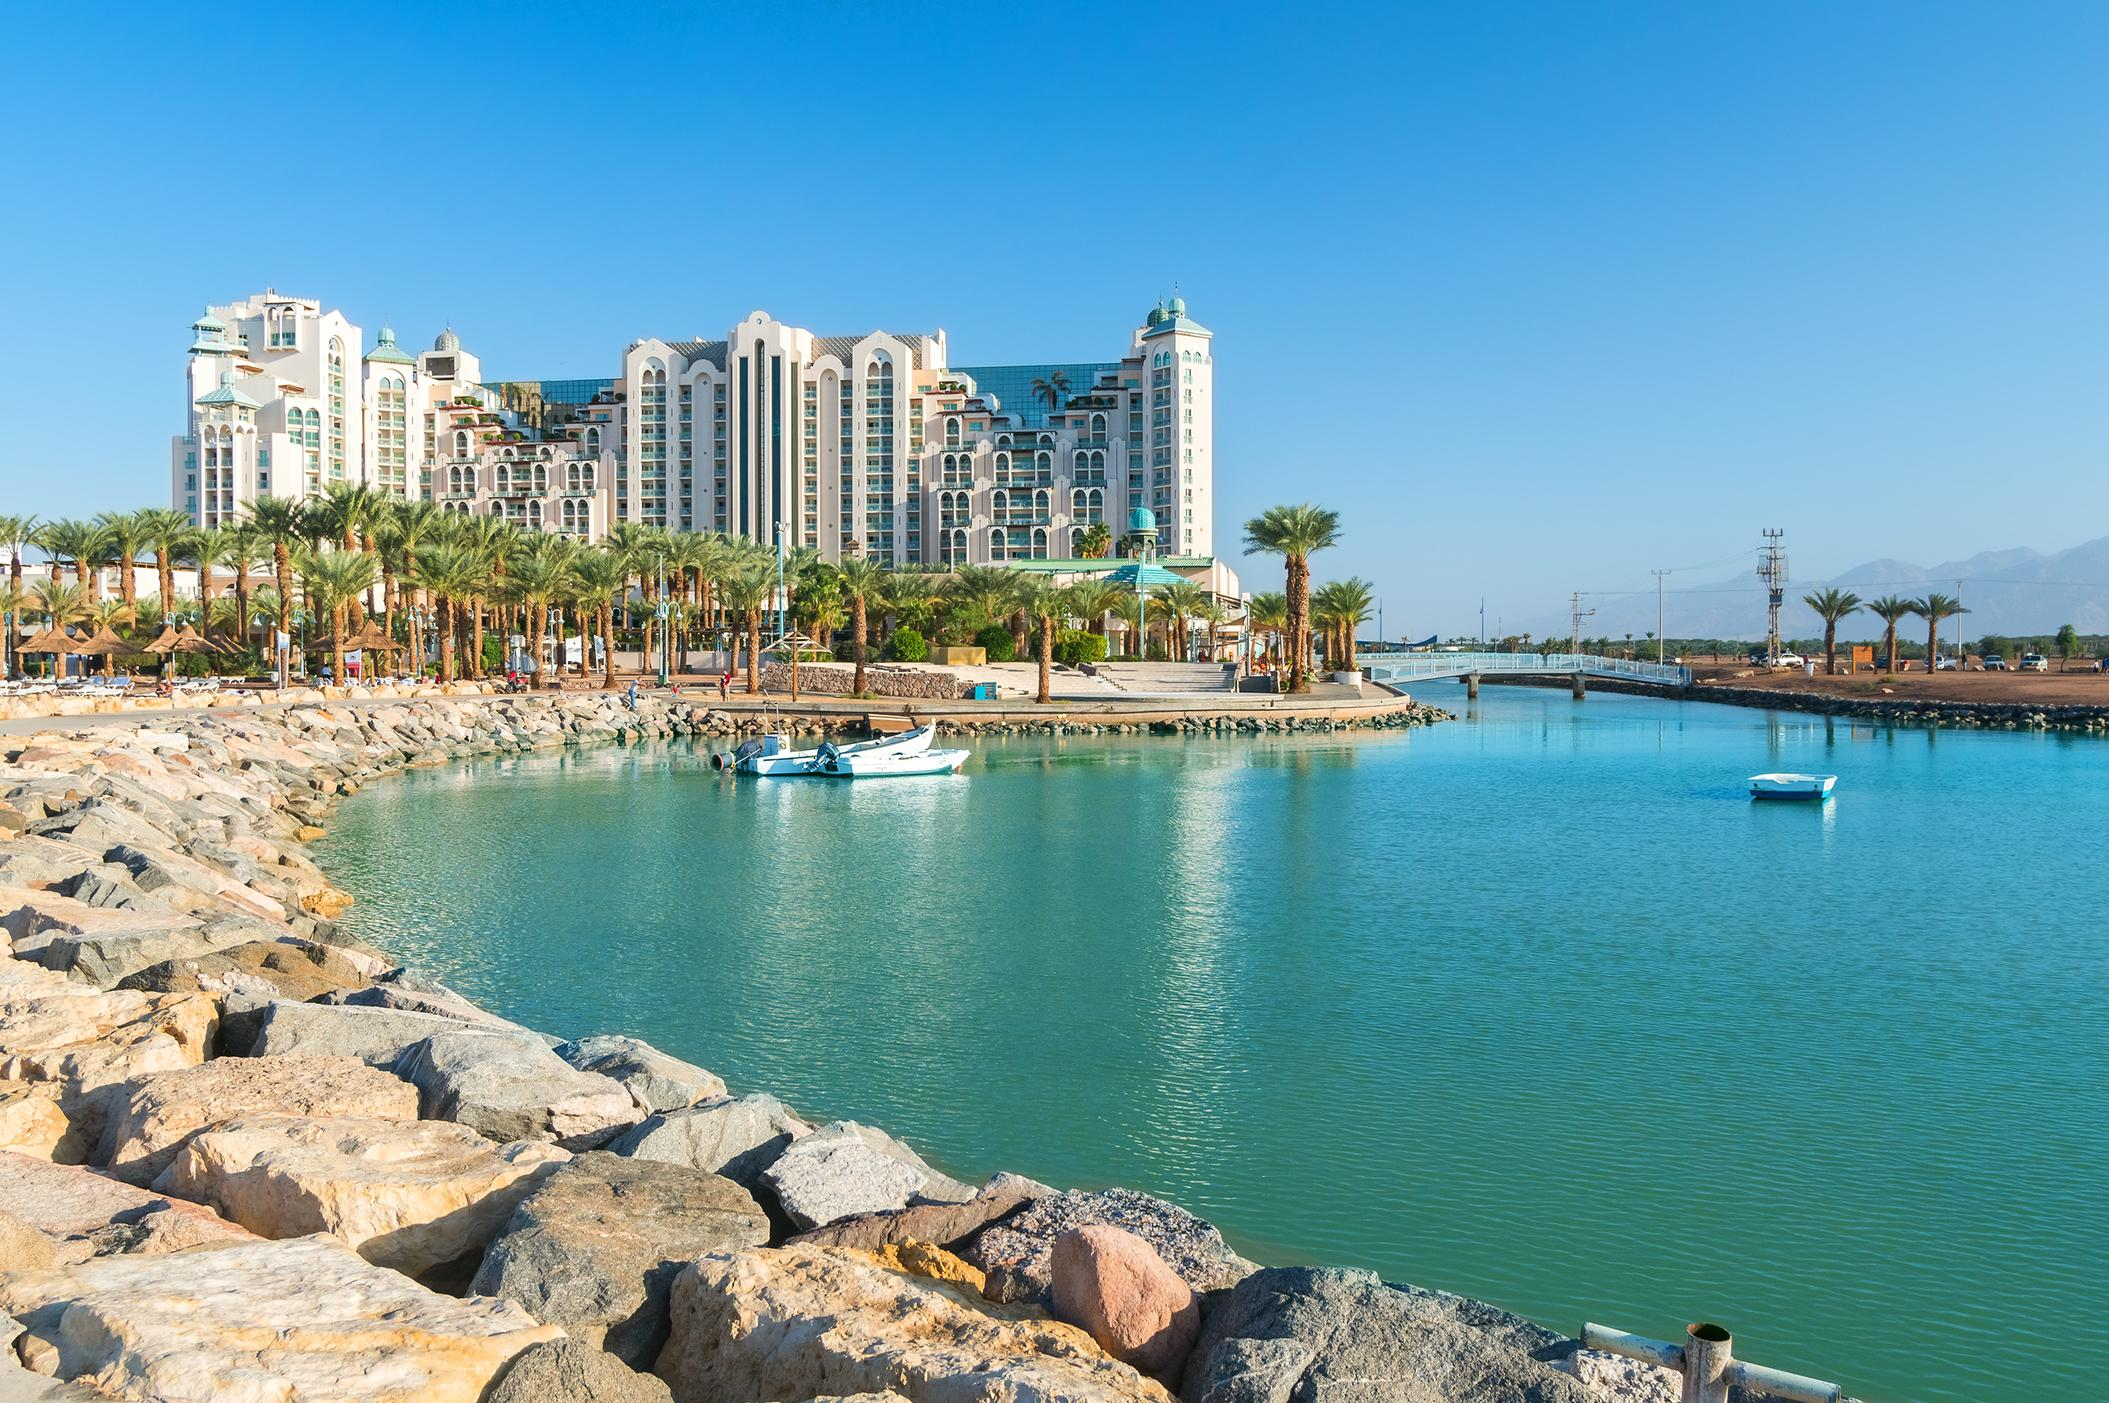 """<p>Eilat is popular with Israeli locals and the bay is a popular attraction with plenty of beautiful beaches and a host of watersports on offer for outdoor enthusiasts.</p>  <p>TripAdvisor recommends a stay at the <a href=""""https://www.tripadvisor.com/Hotel_Review-g293980-d301856-Reviews-Herods_Vitalis_Spa_Hotel_Eilat-Eilat_Southern_District.html"""" target=""""_blank"""">Herods Vitalis Spa Hotel</a>, bookable from £393 per night.</p>"""